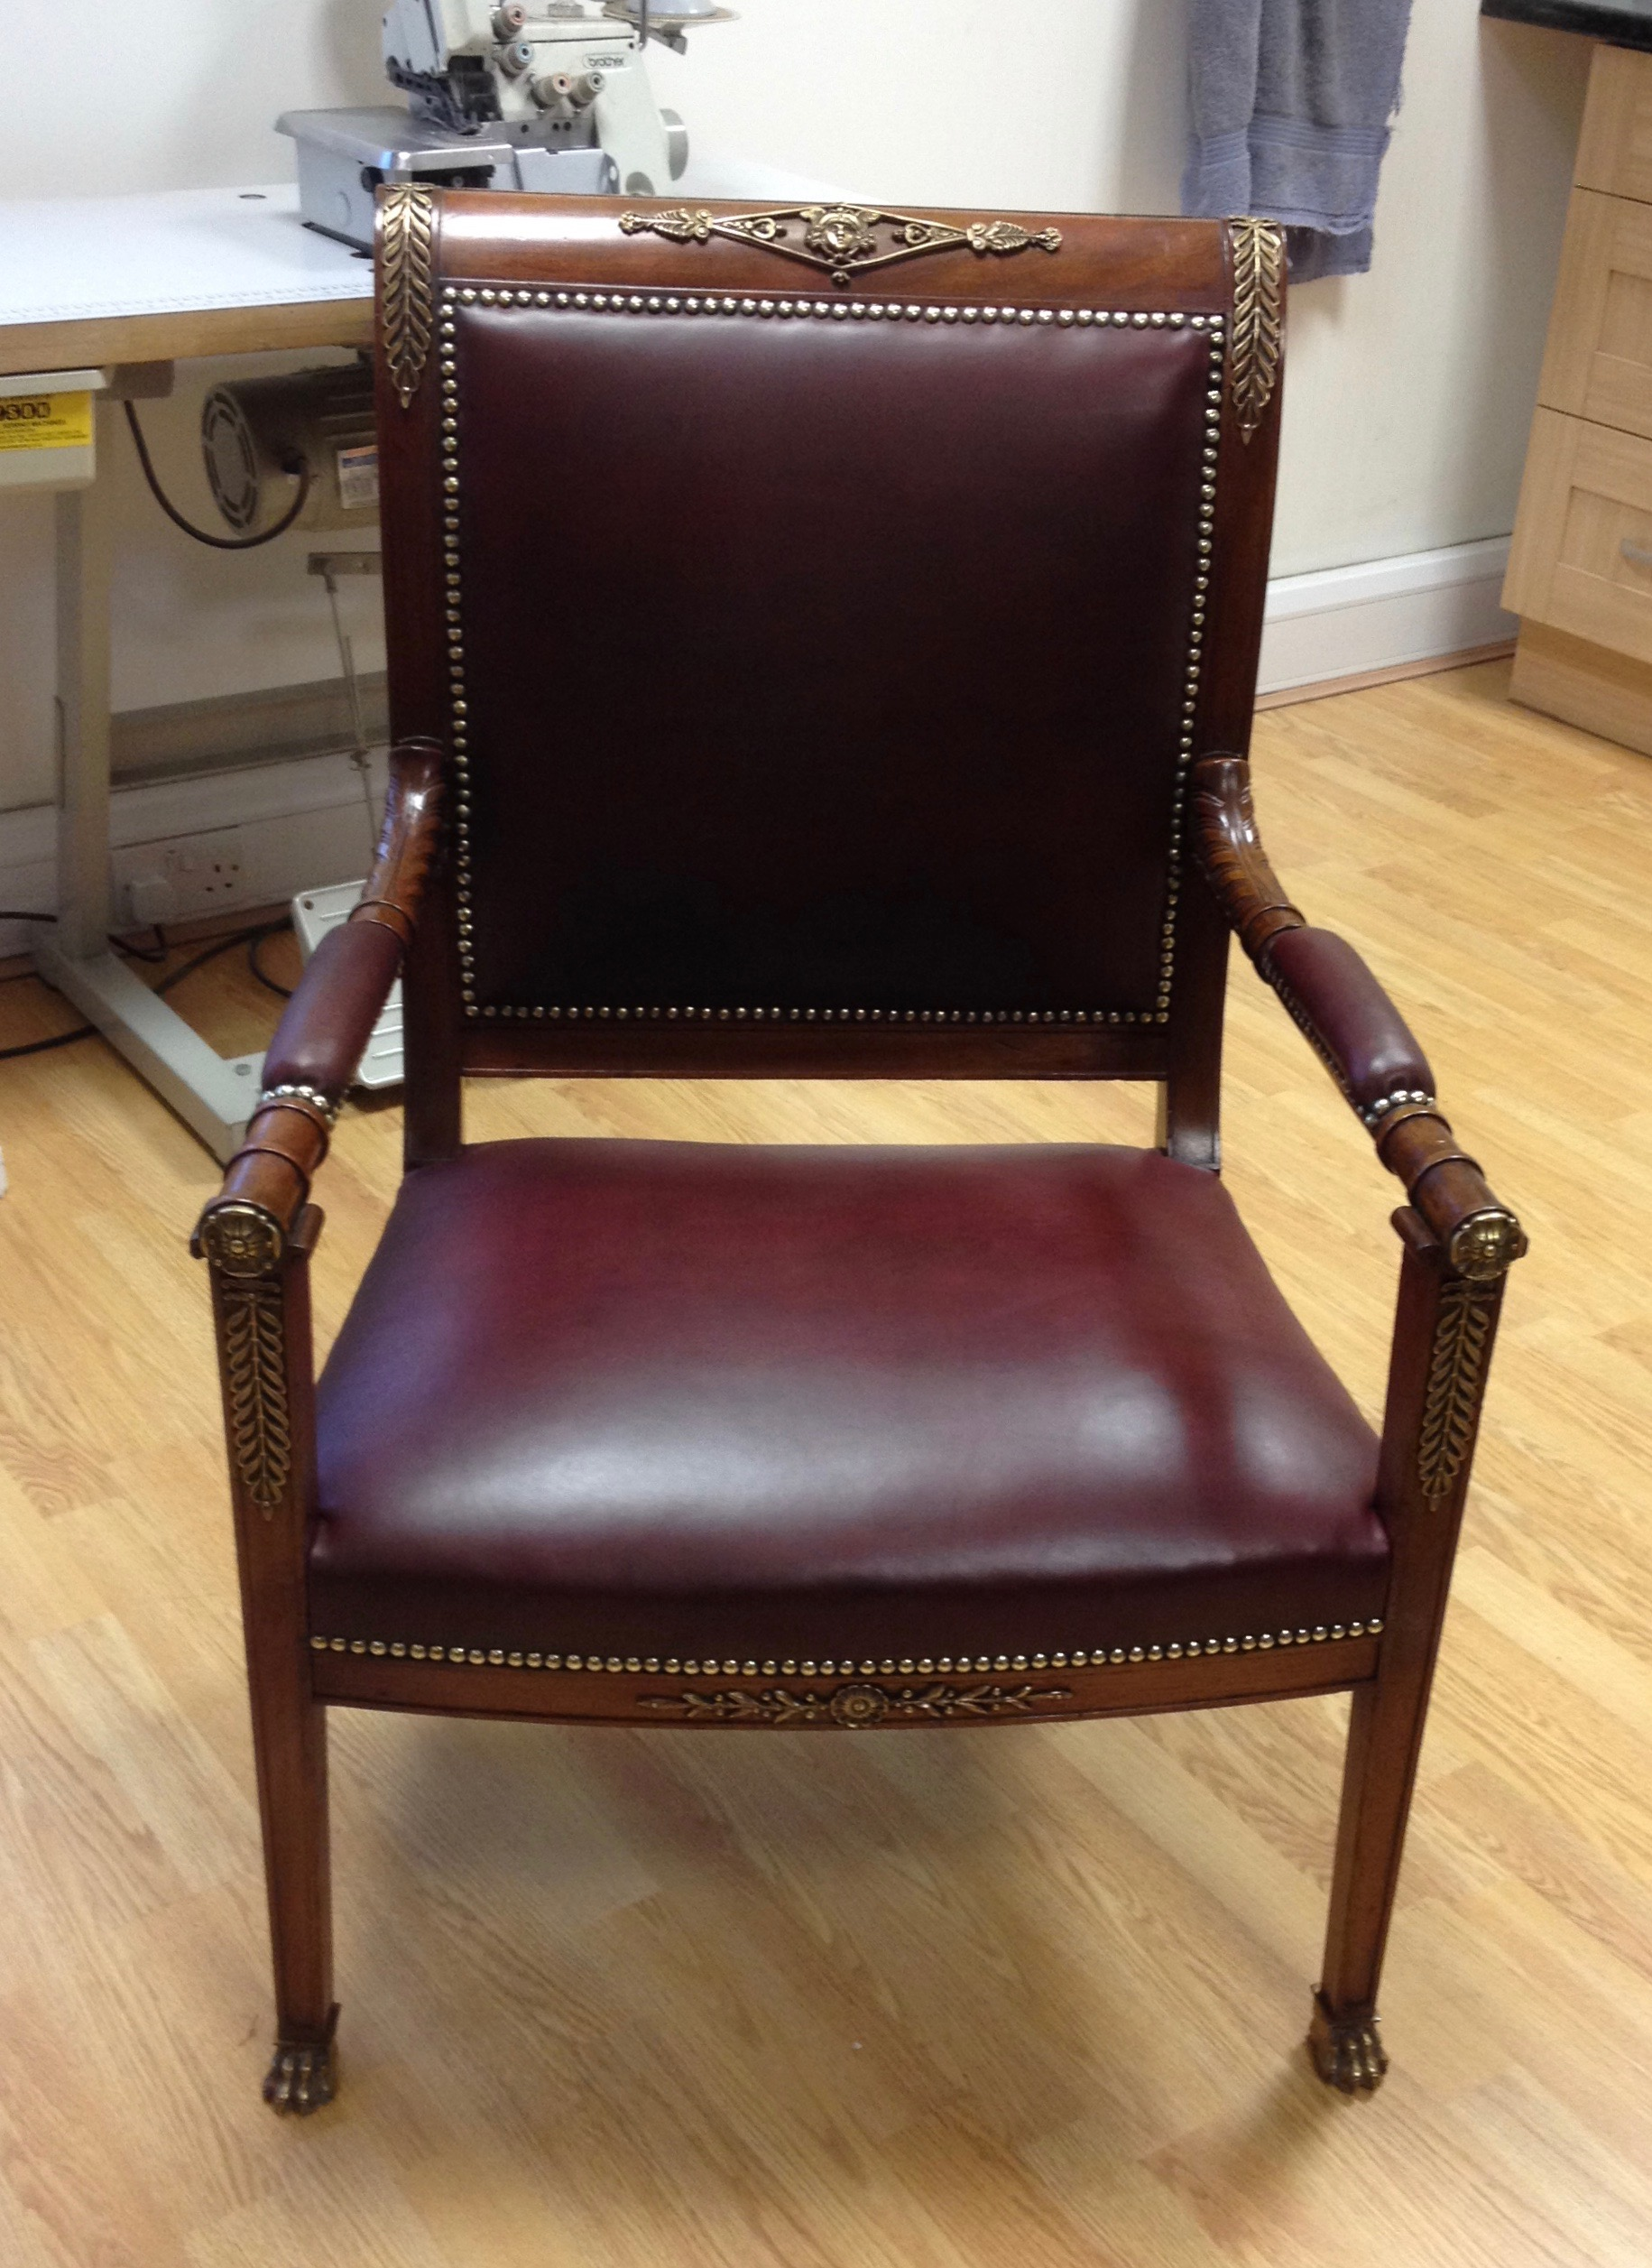 Traditionally upholstered leather desk chair. Regency period.